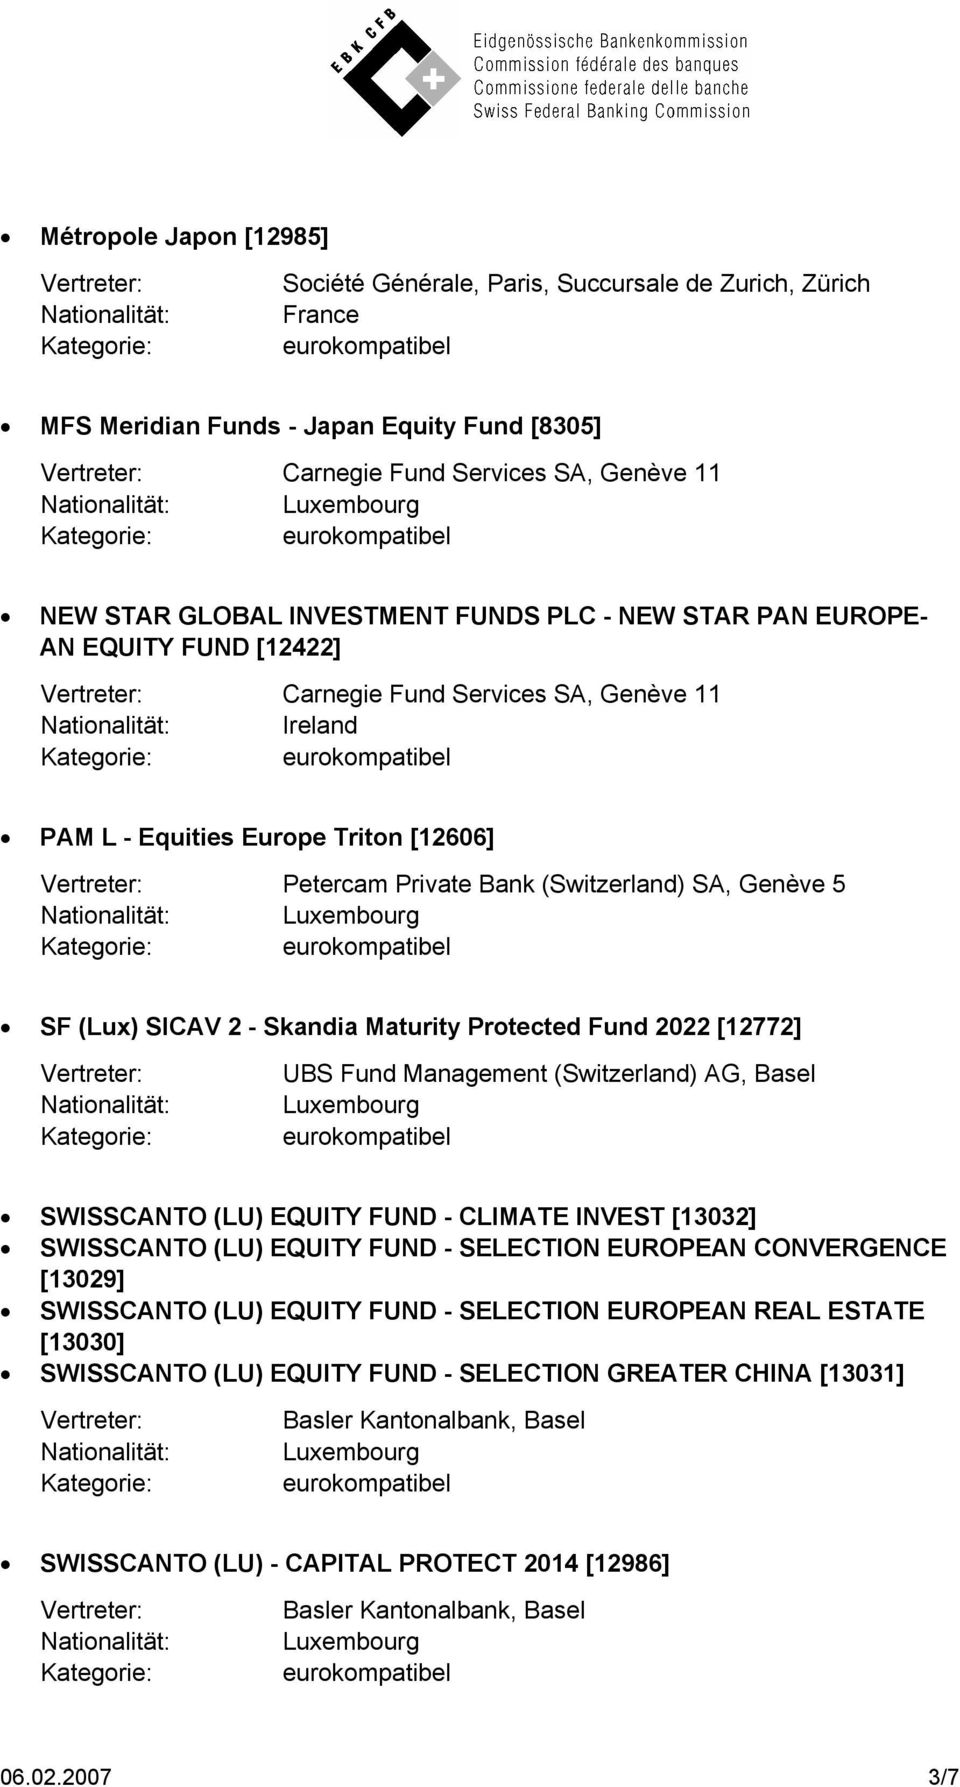 Management (Switzerland) AG, Basel SWISSCANTO (LU) EQUITY FUND - CLIMATE INVEST [13032] SWISSCANTO (LU) EQUITY FUND - SELECTION EUROPEAN CONVERGENCE [13029] SWISSCANTO (LU) EQUITY FUND - SELECTION